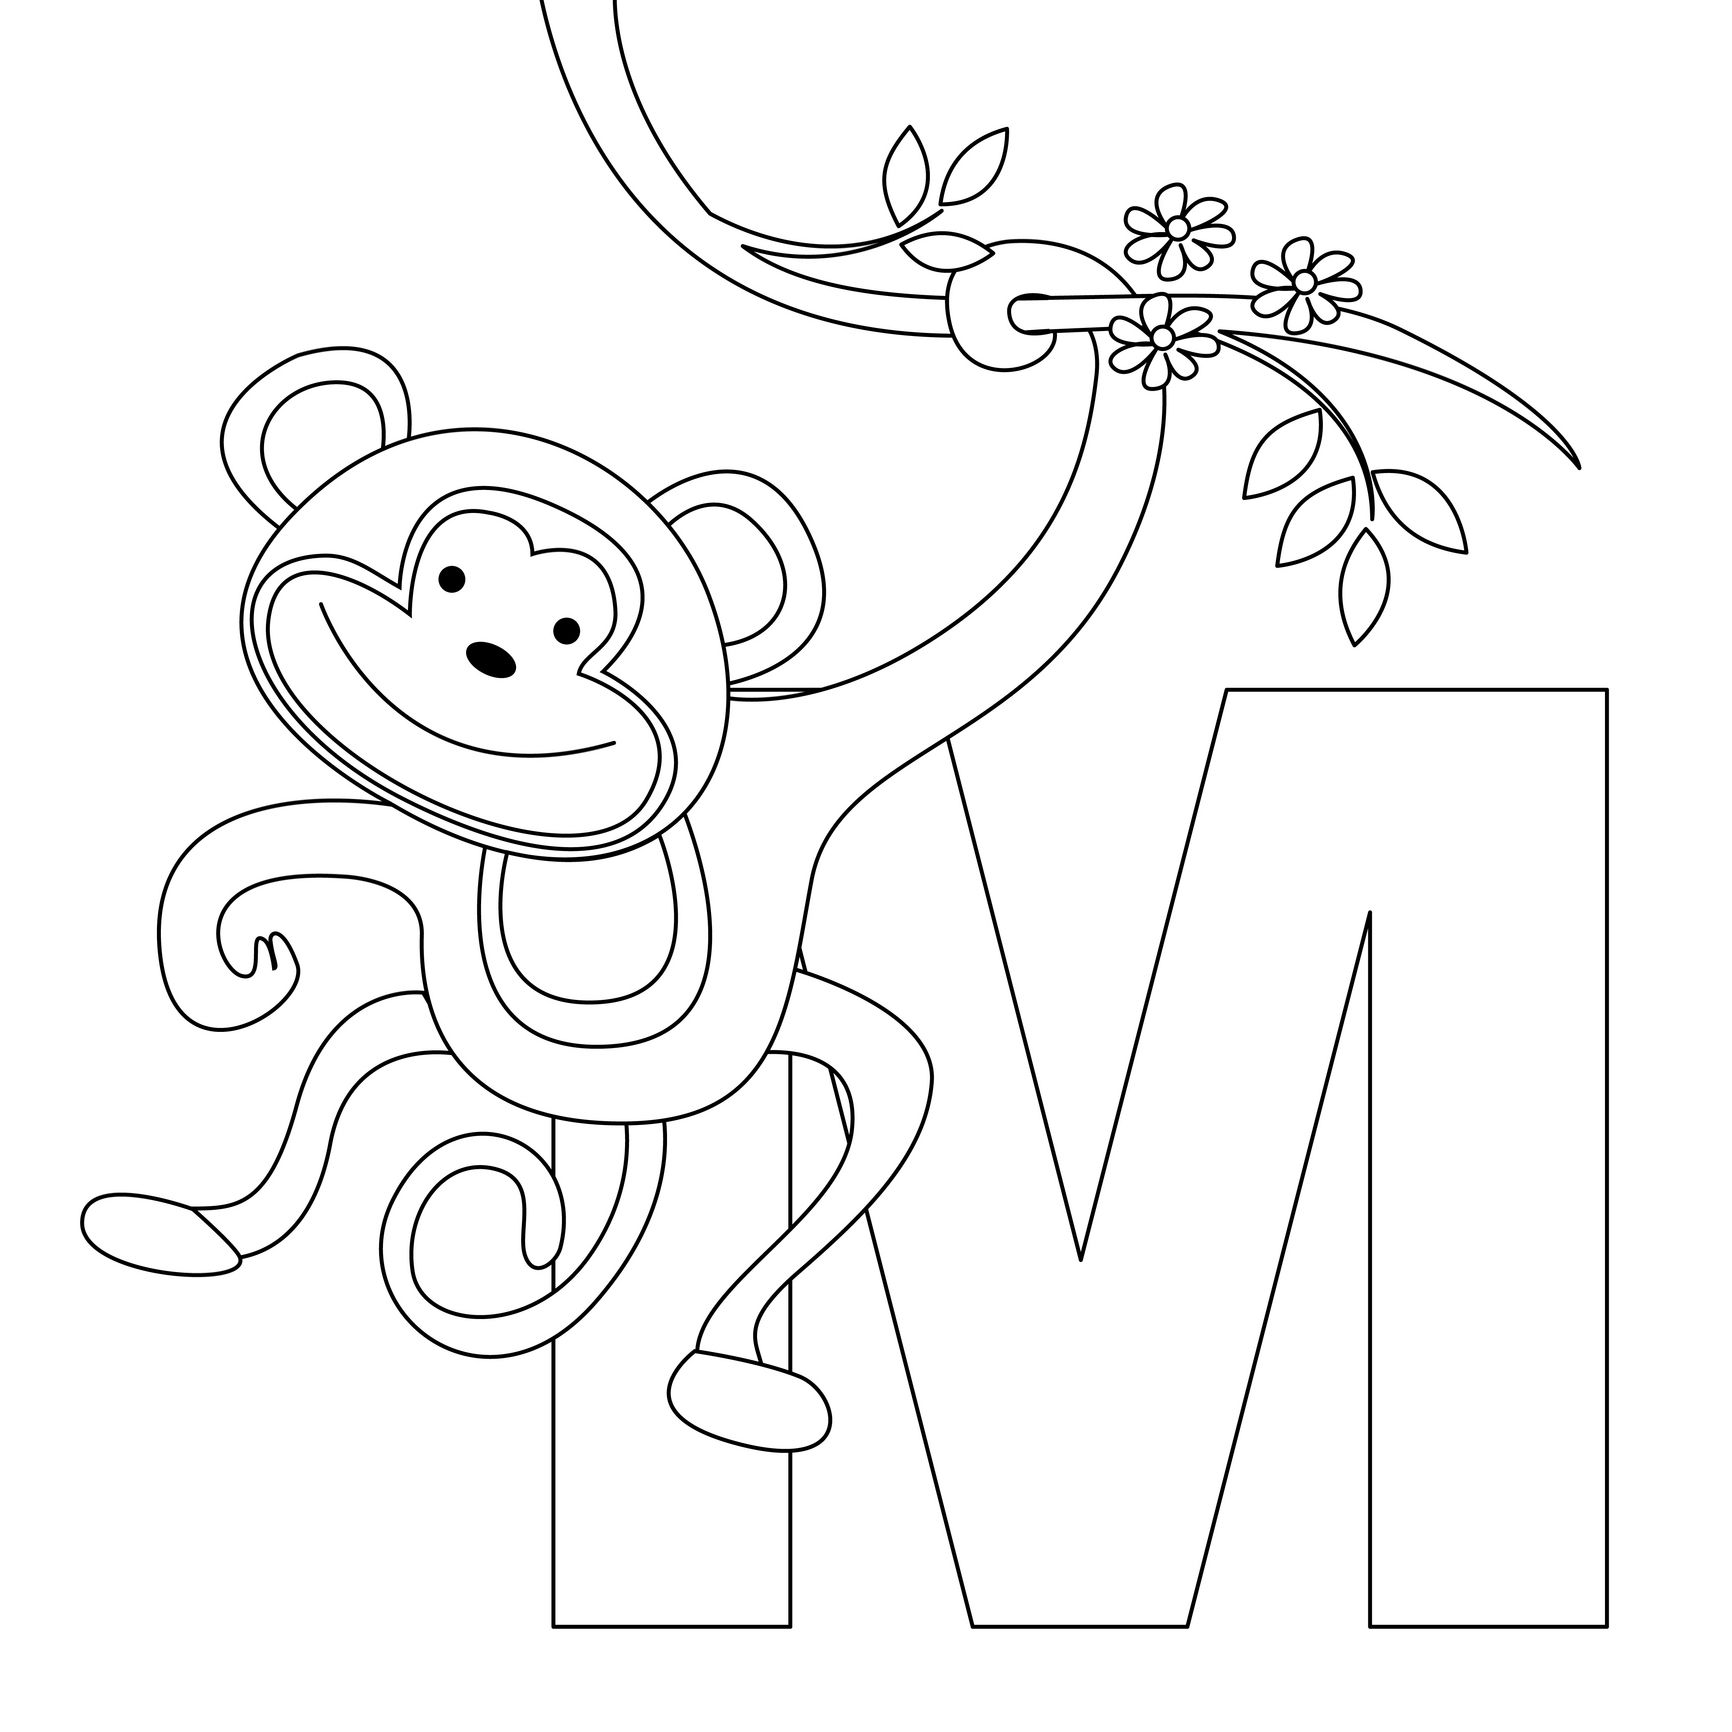 Animal Alphabet Letter M For Monkey Here S A Simple Animal